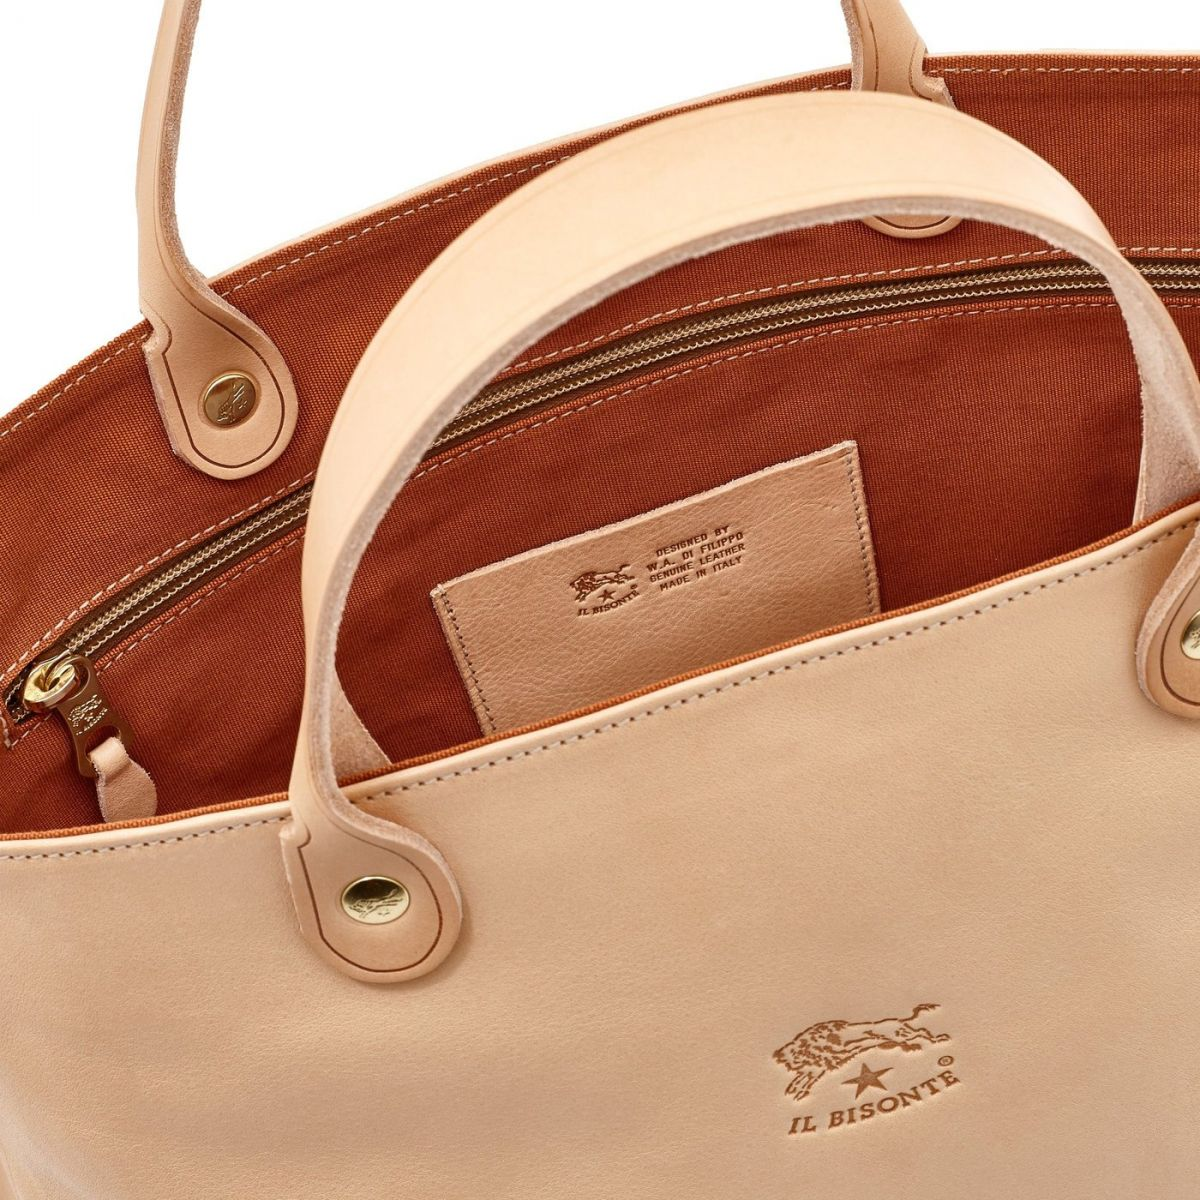 Women's Handbag in Cowhide Double Leather BTH022 color Natural | Details